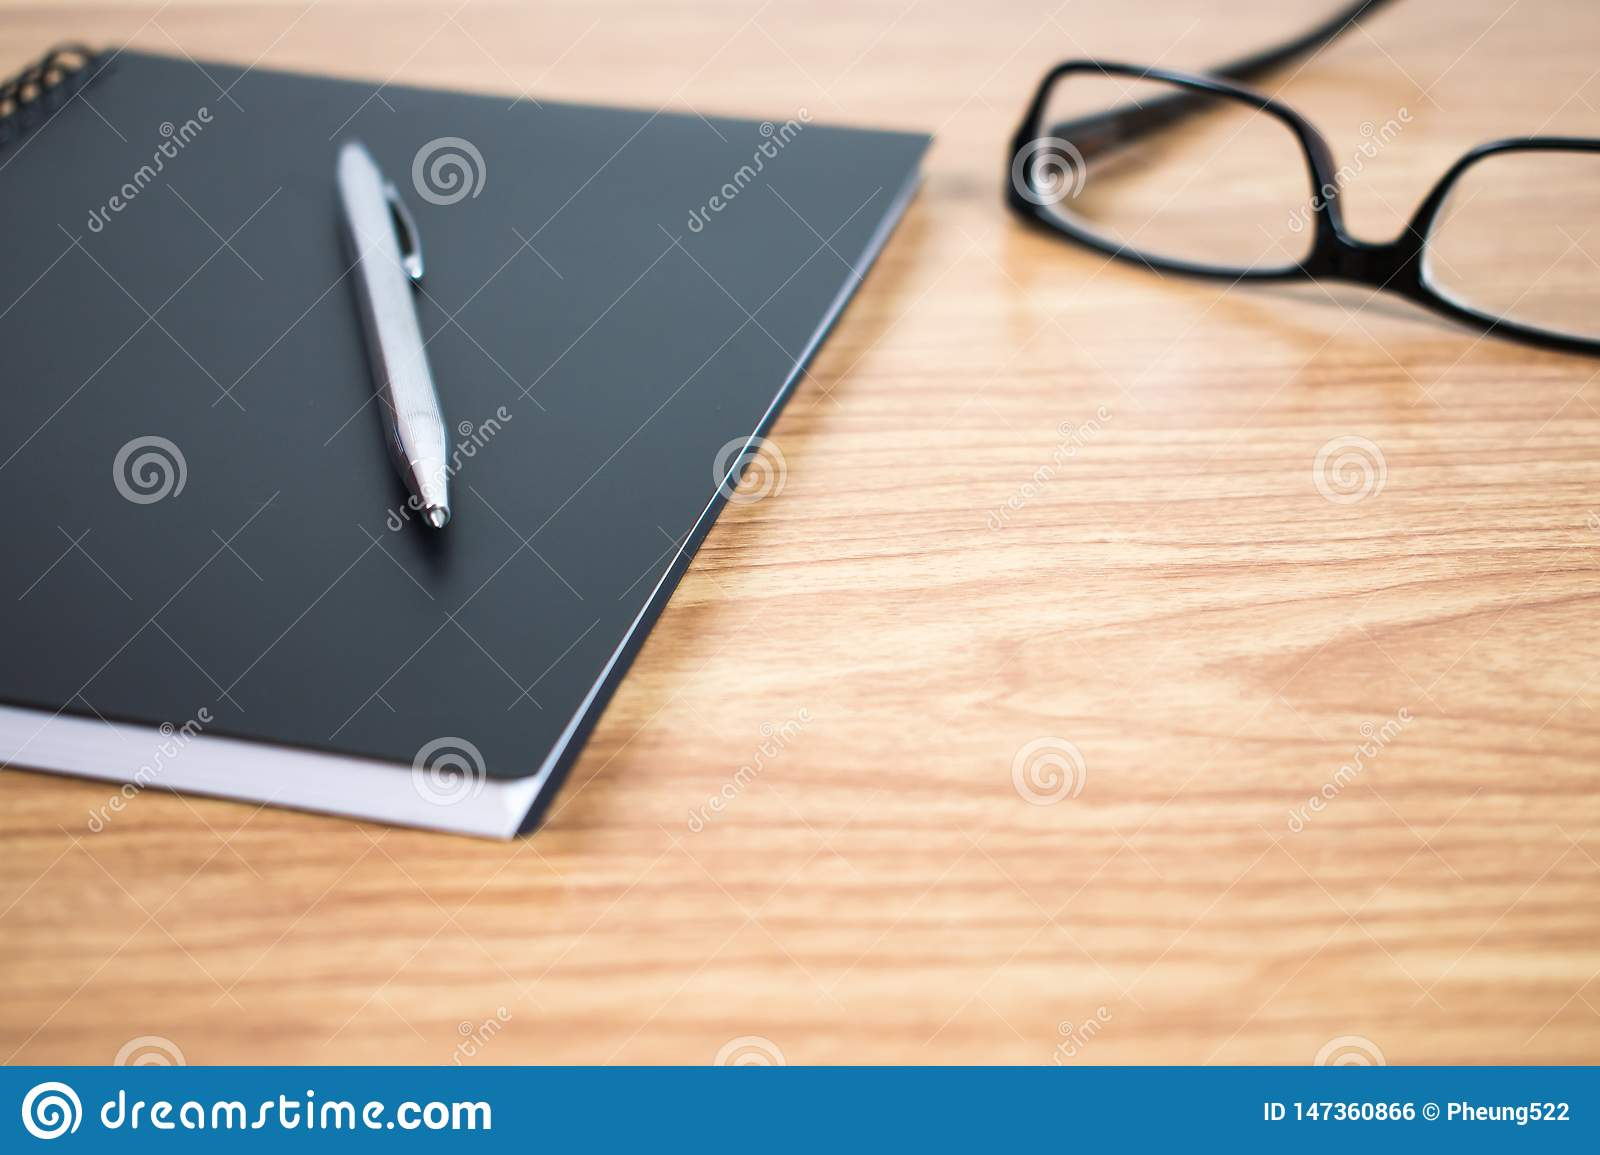 Side view of a pen and notebook at the ready on the table. Close up.